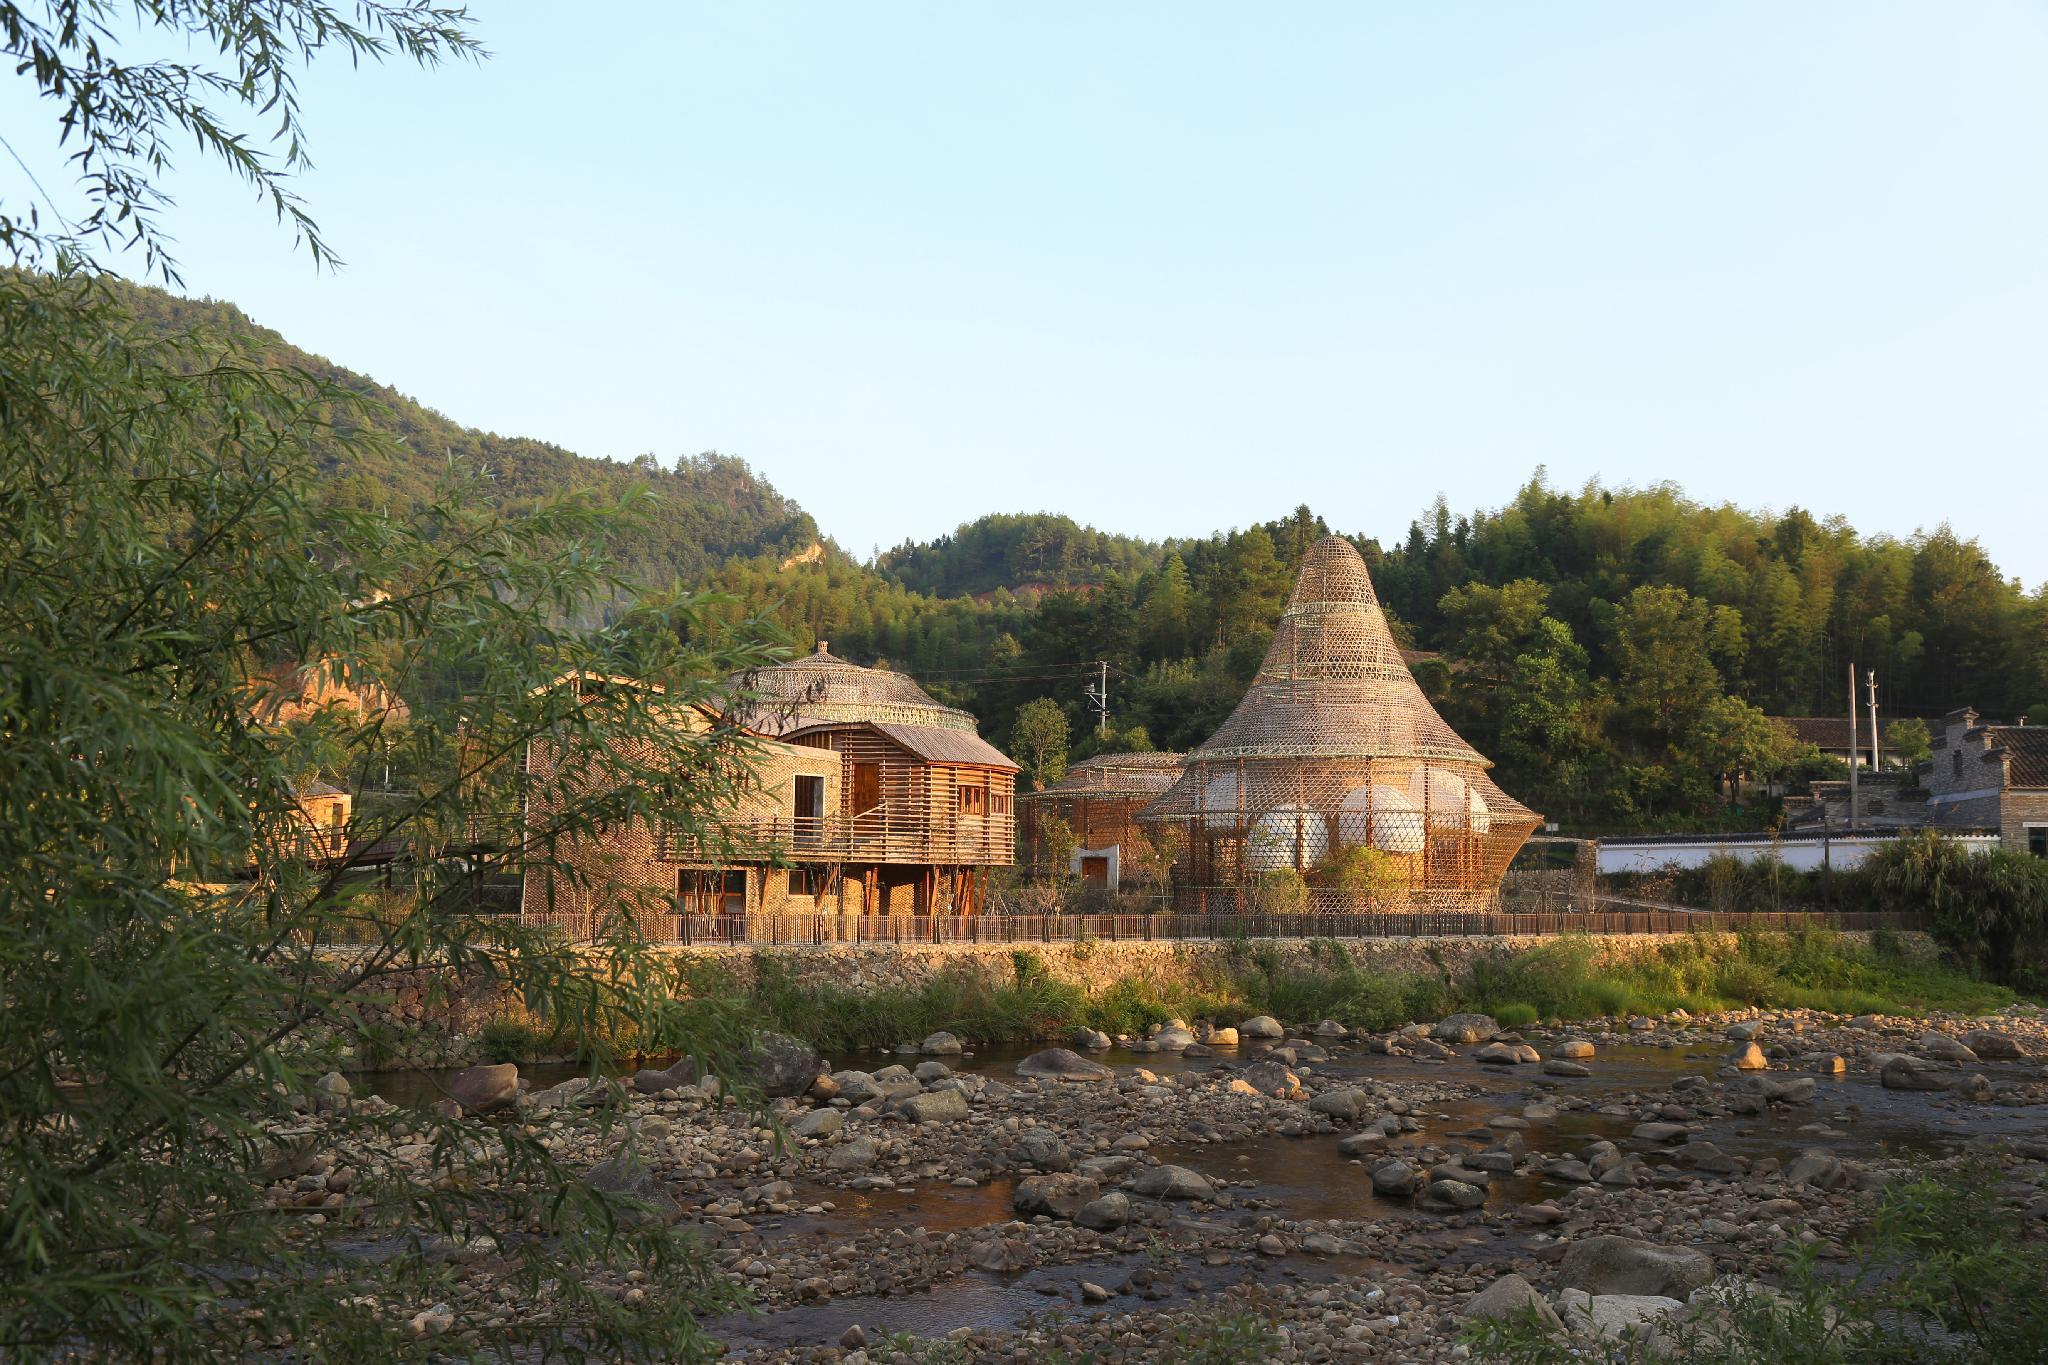 The International Cultural and Creative Bamboo Village, Lishui